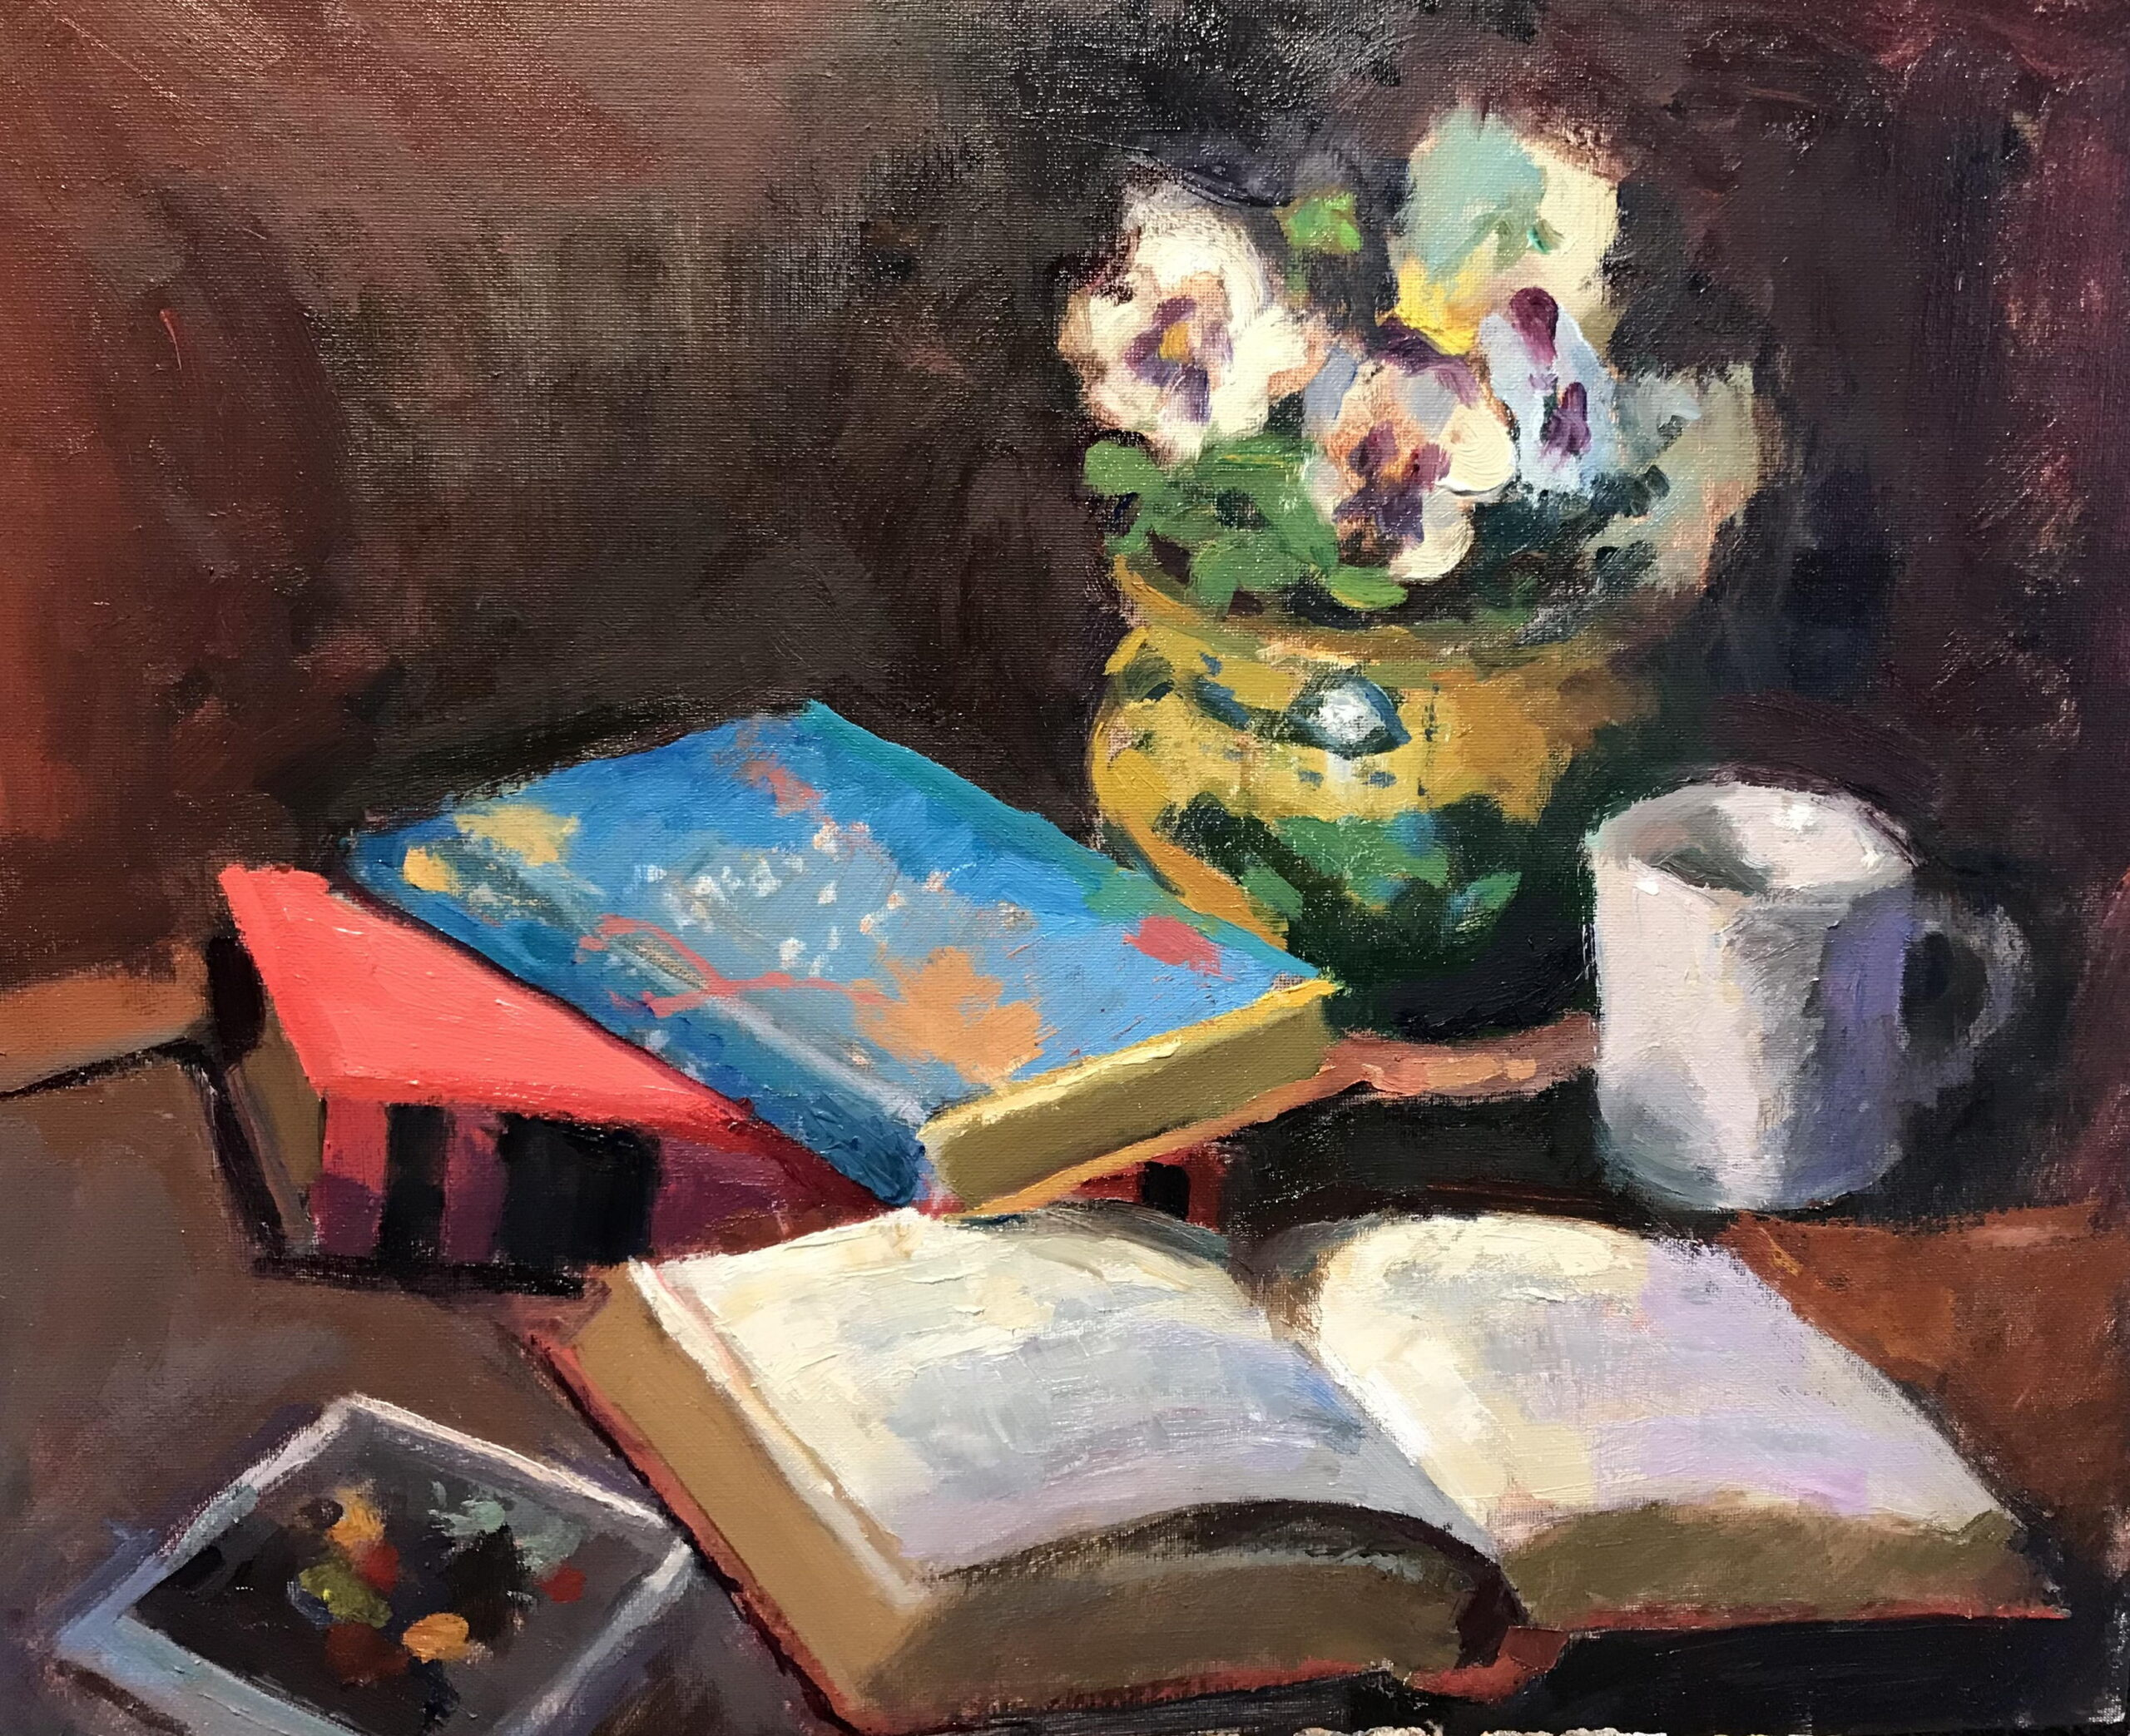 Books and Pansies, Oil on Canvas on Panel, 16 x 20 Inches, by Susan Grisell, $550